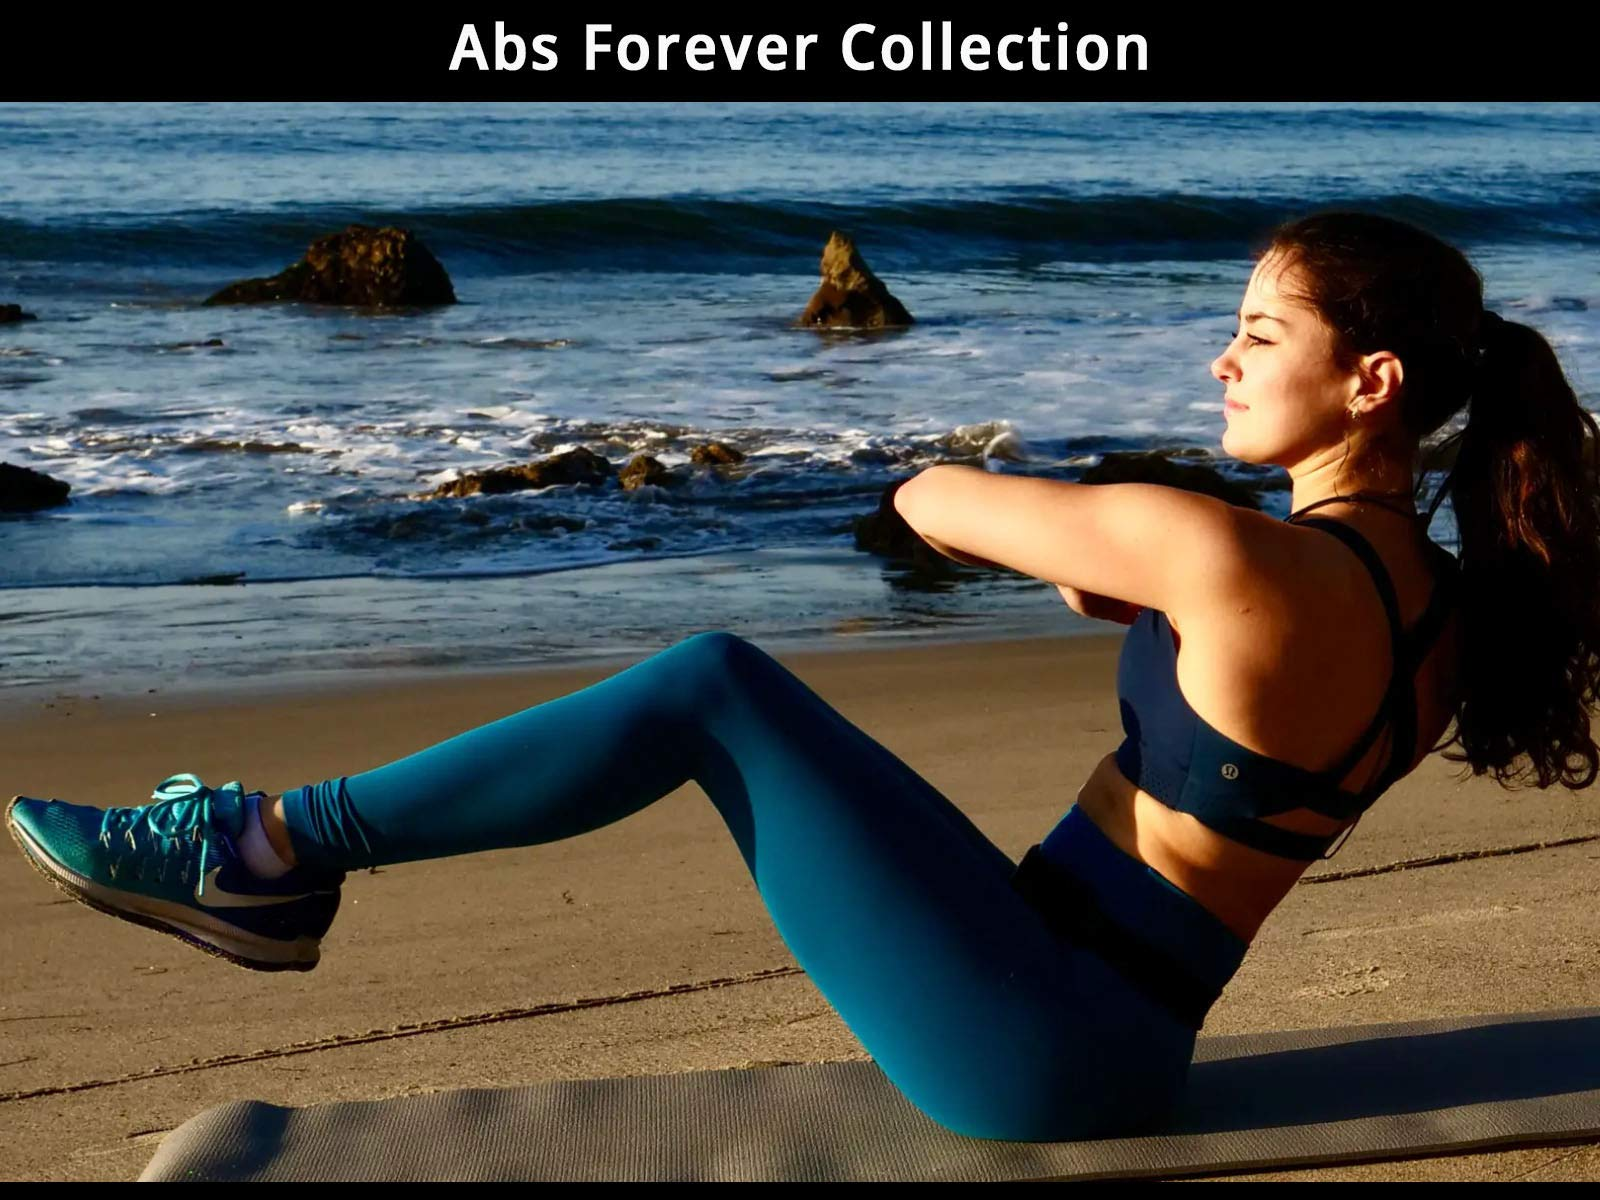 Abs Forever Collection